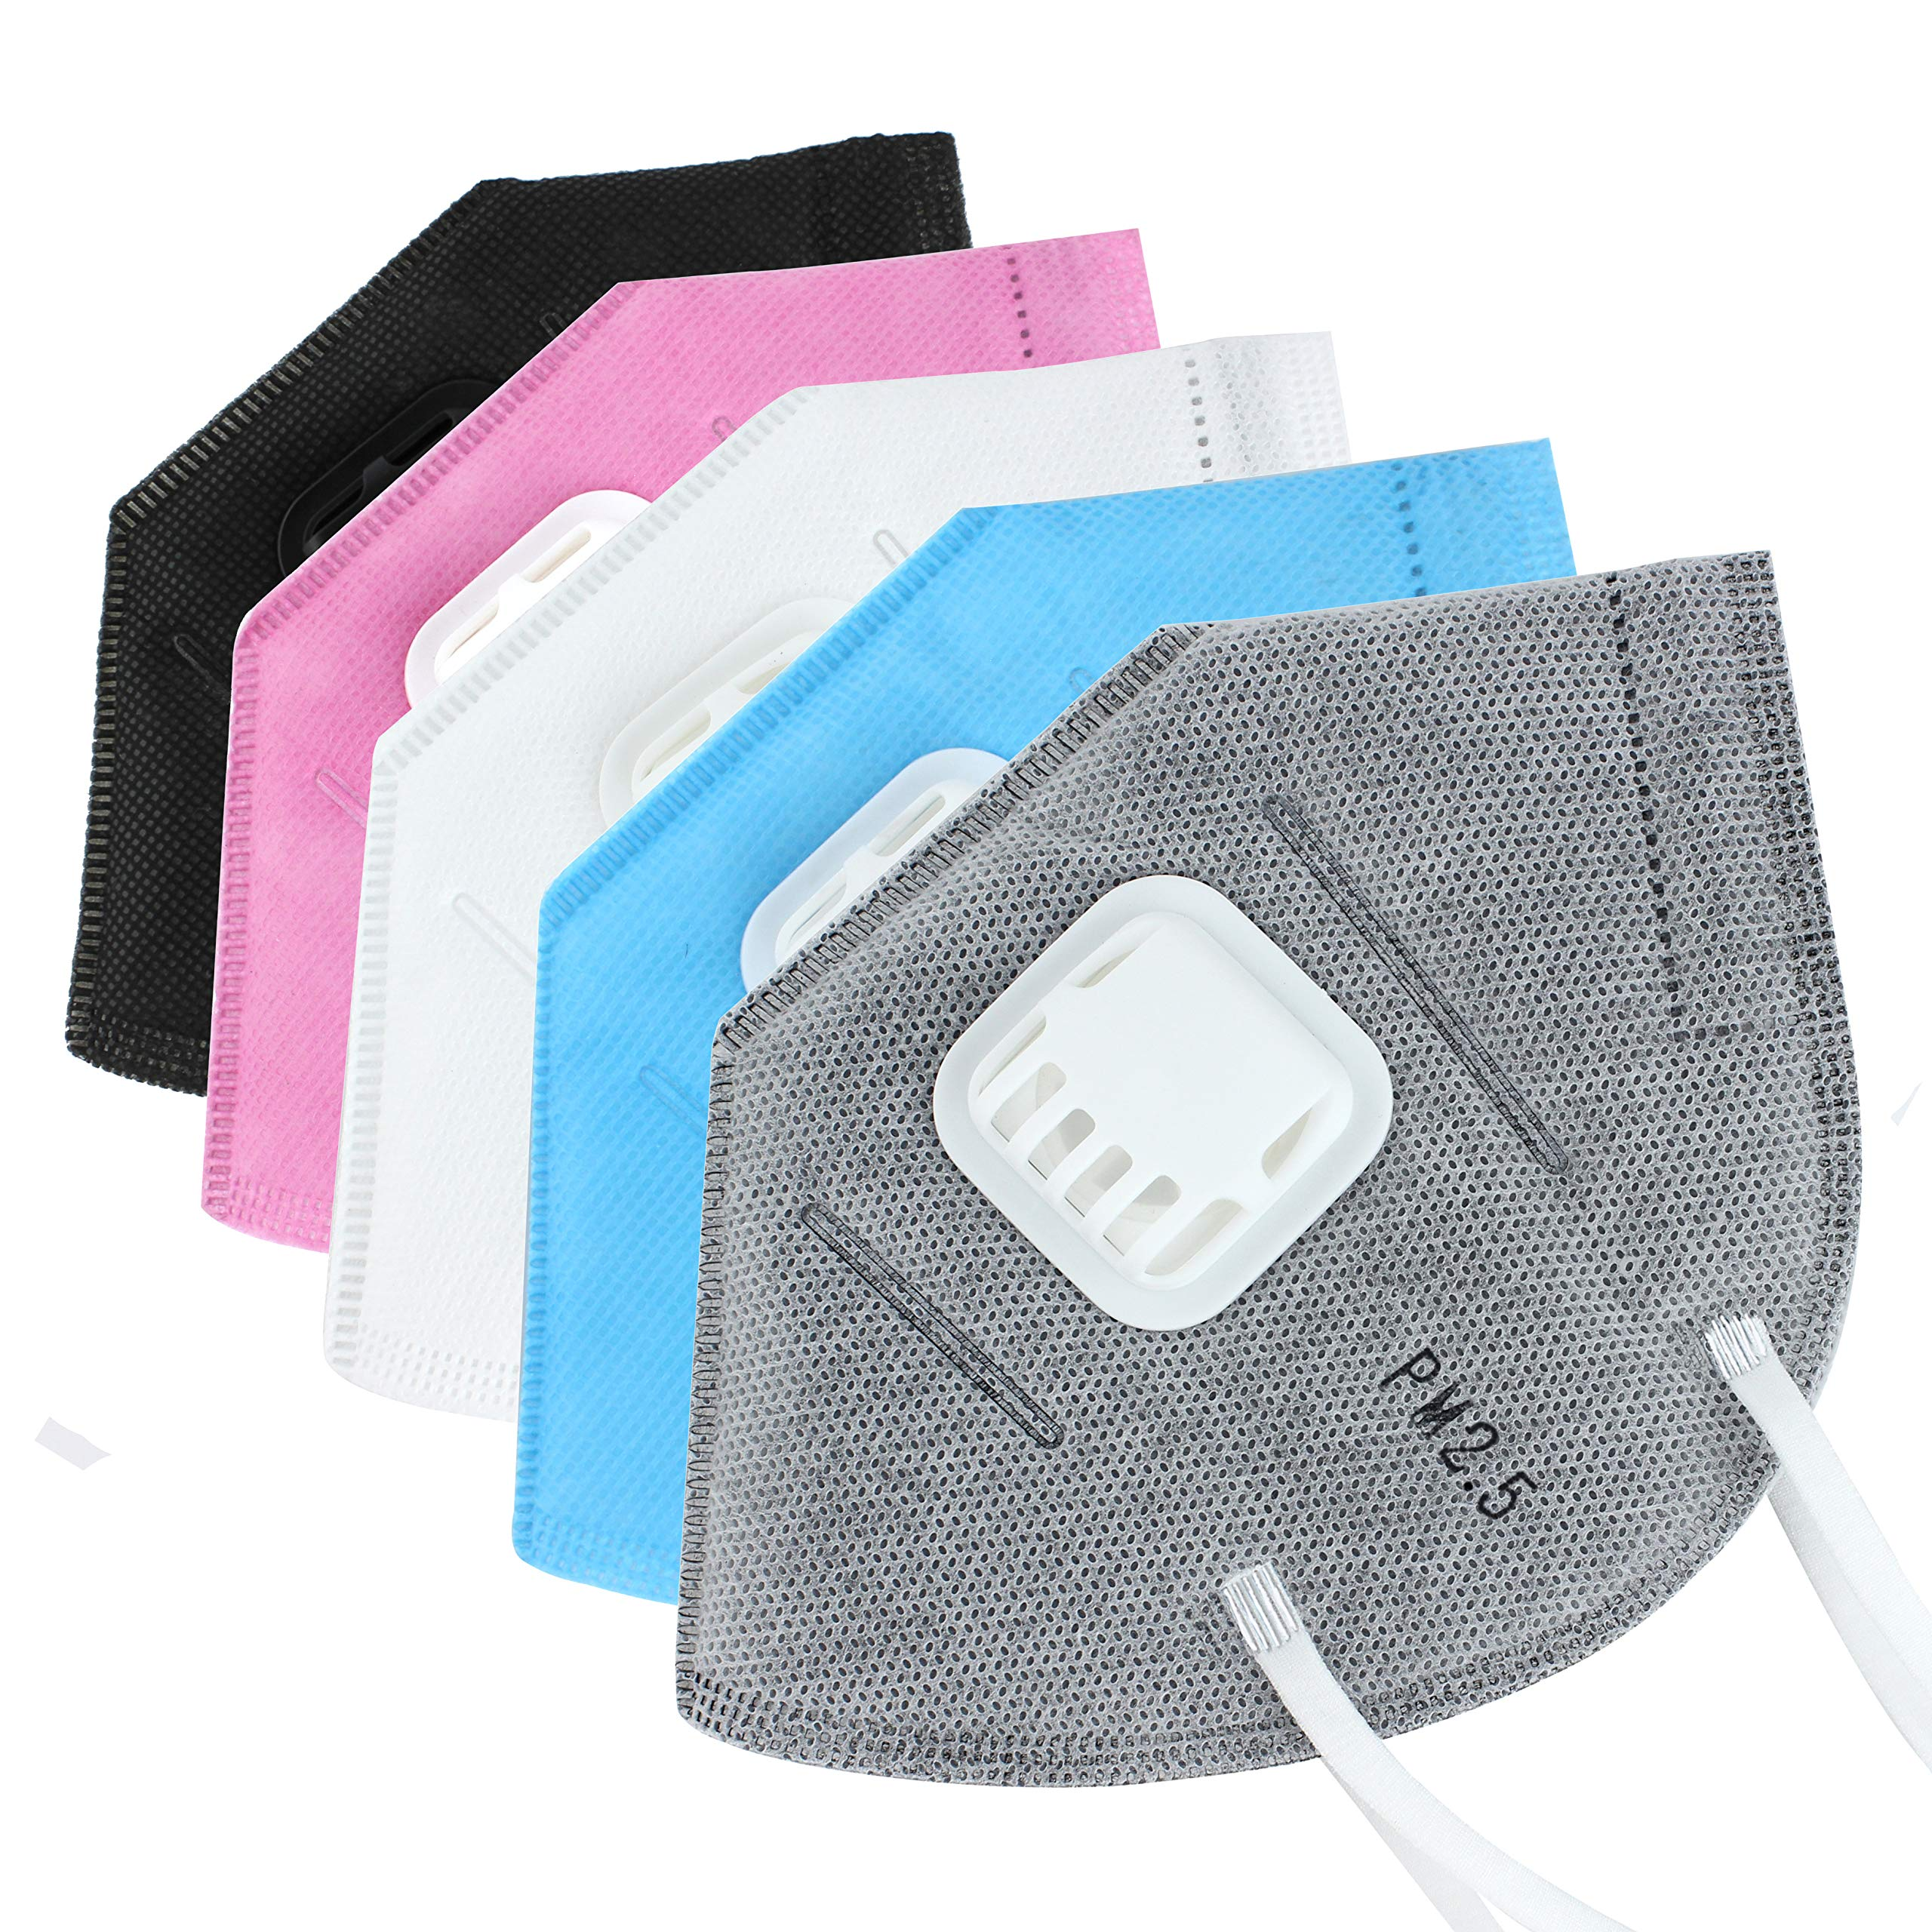 Muryobao N95 Mouth Mask Anti Pollution Respirator Mask Anti Dust Mask Outdoor Protection Insert Valve Filter for Men Women 5 Pack Grey Black White Blue Pink by Muryobao